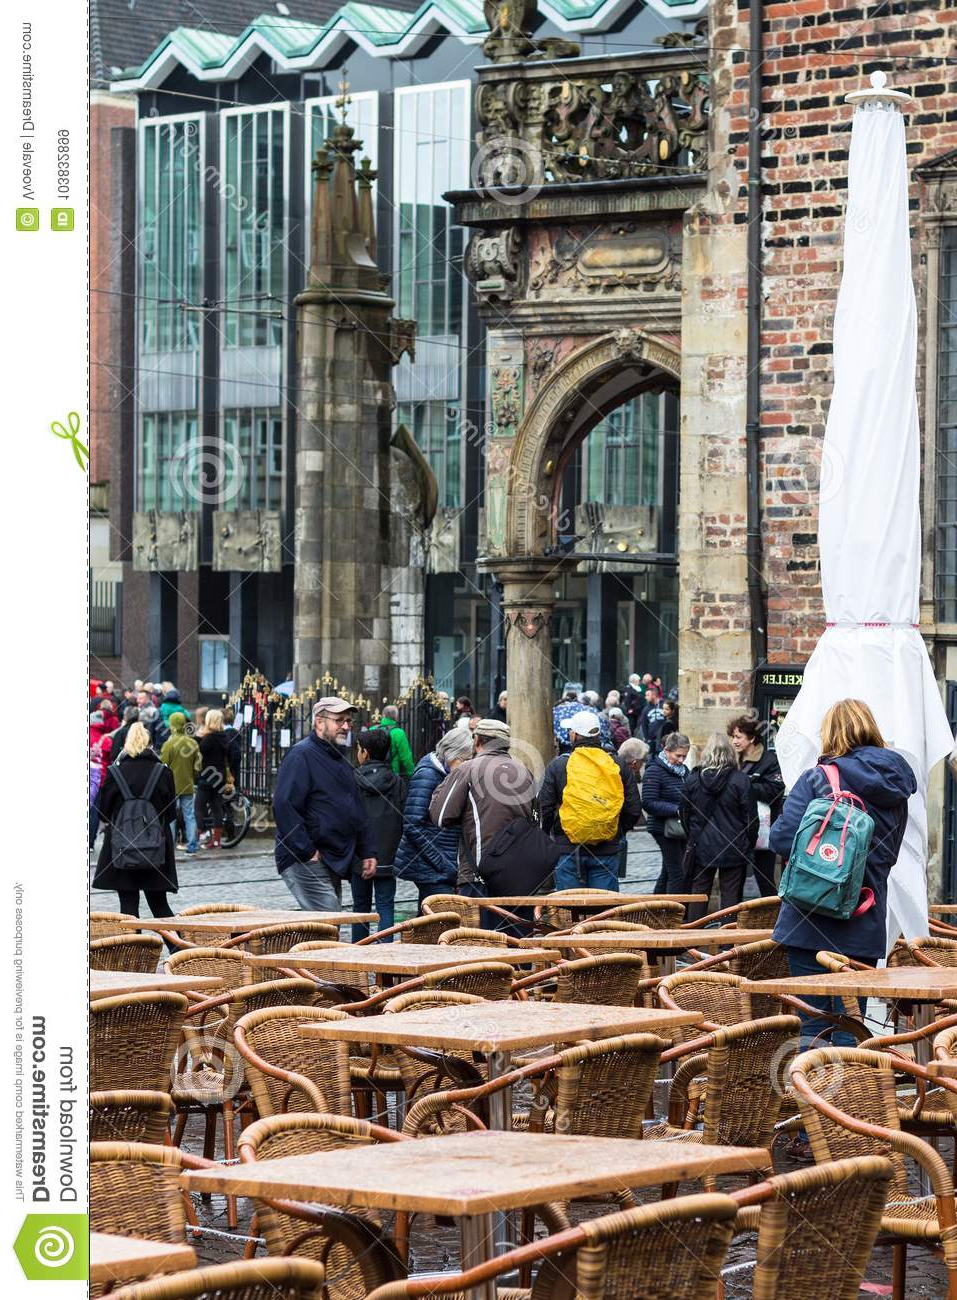 Recent Table Of Outdoor Cafe On Bremen Market Square Editorial Stock Image In Breen Market Umbrellas (View 18 of 20)